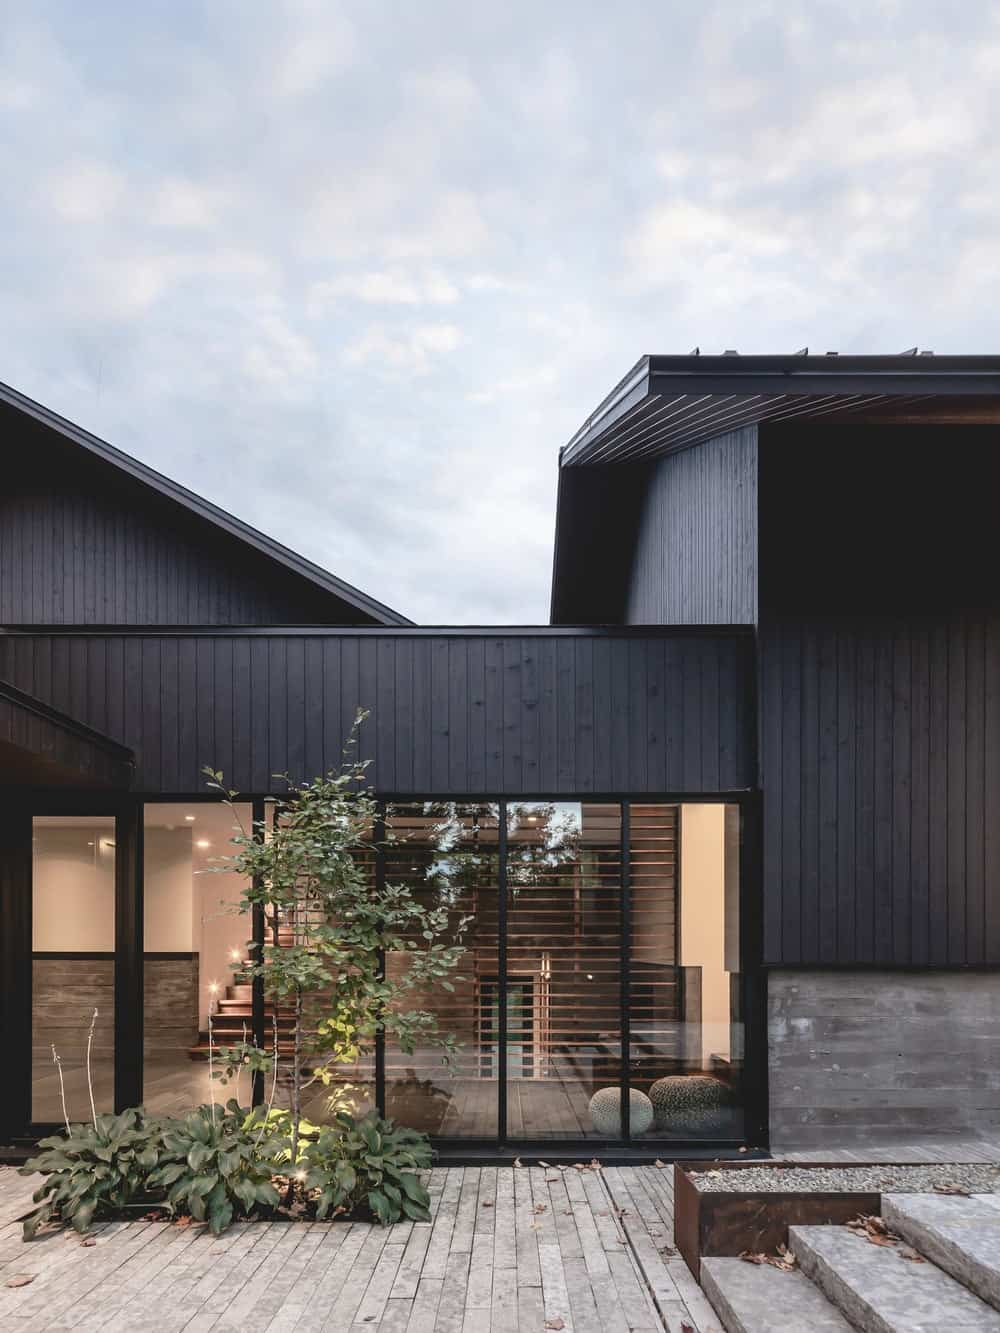 This is a side of the house with dark walls that make the glass walls stand out with warm glow from the interior lights.